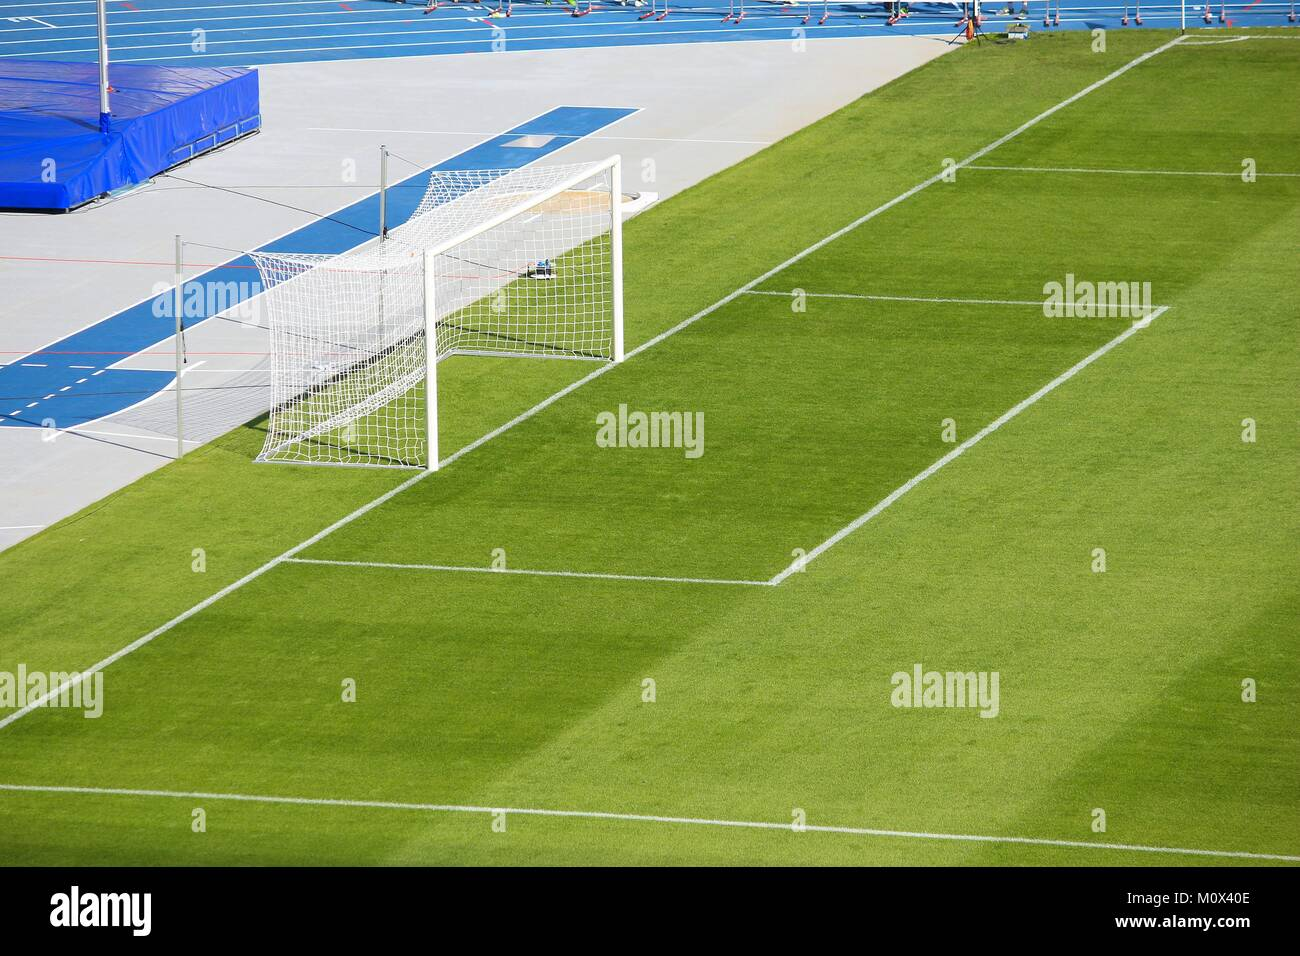 grass soccer field with goal. Football Pitch - Soccer Field With Goal Area. Grass